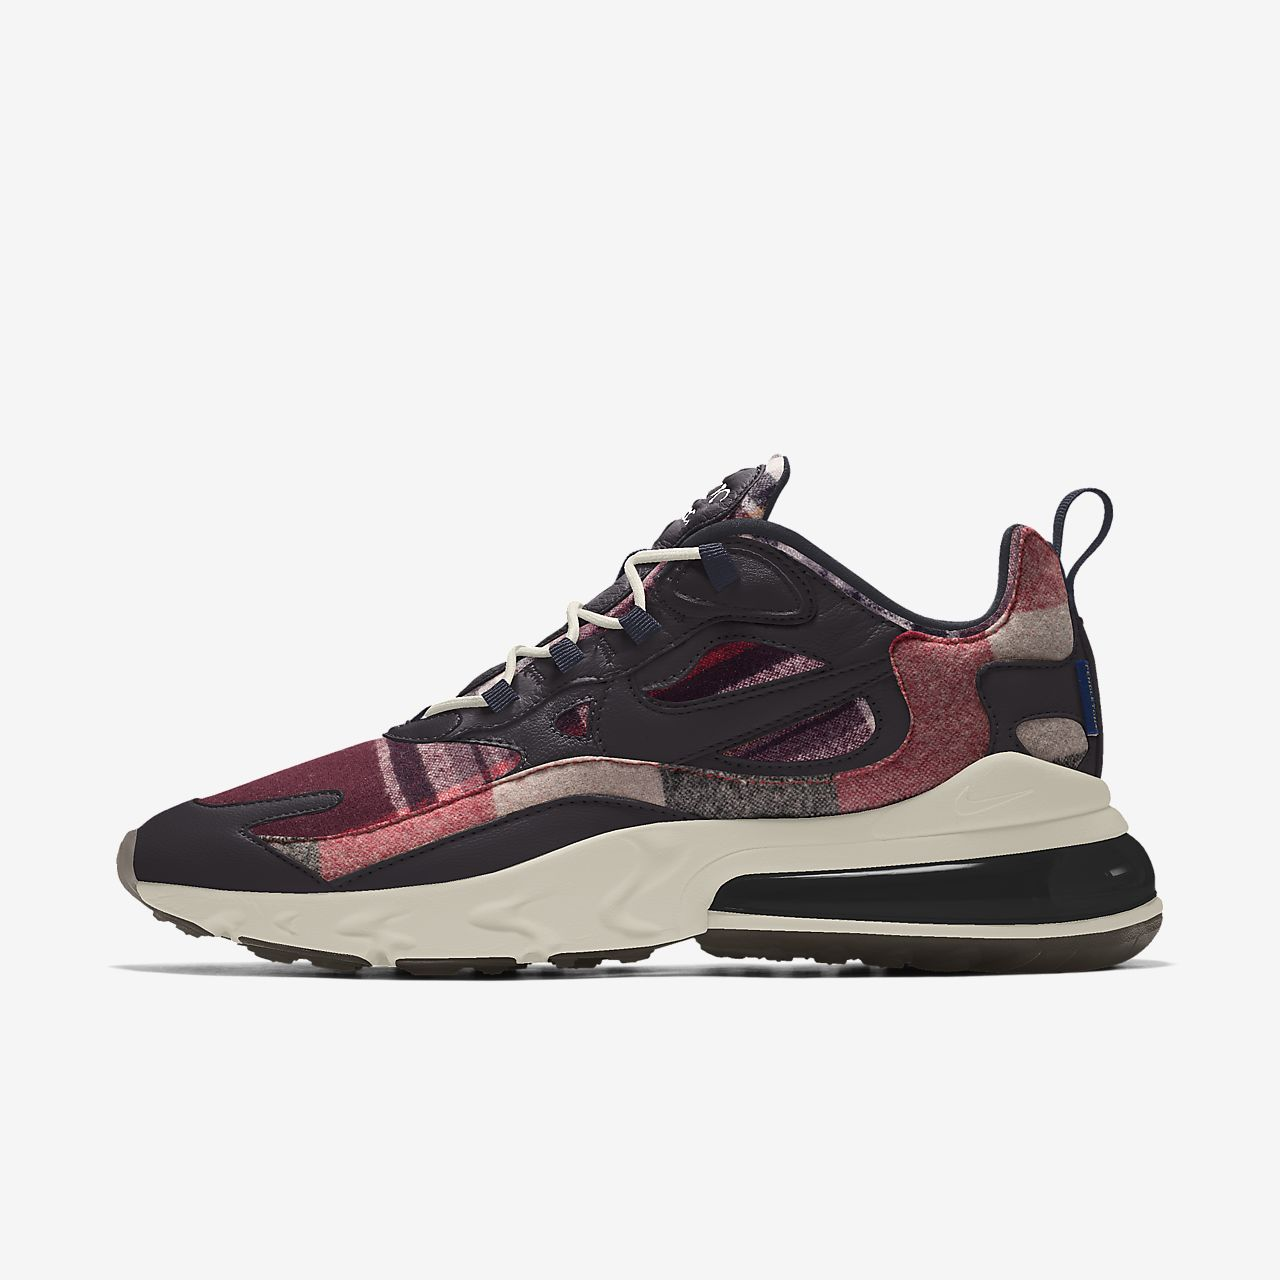 Nike Air Max 270 React Pendleton By You Custom Women's Shoe